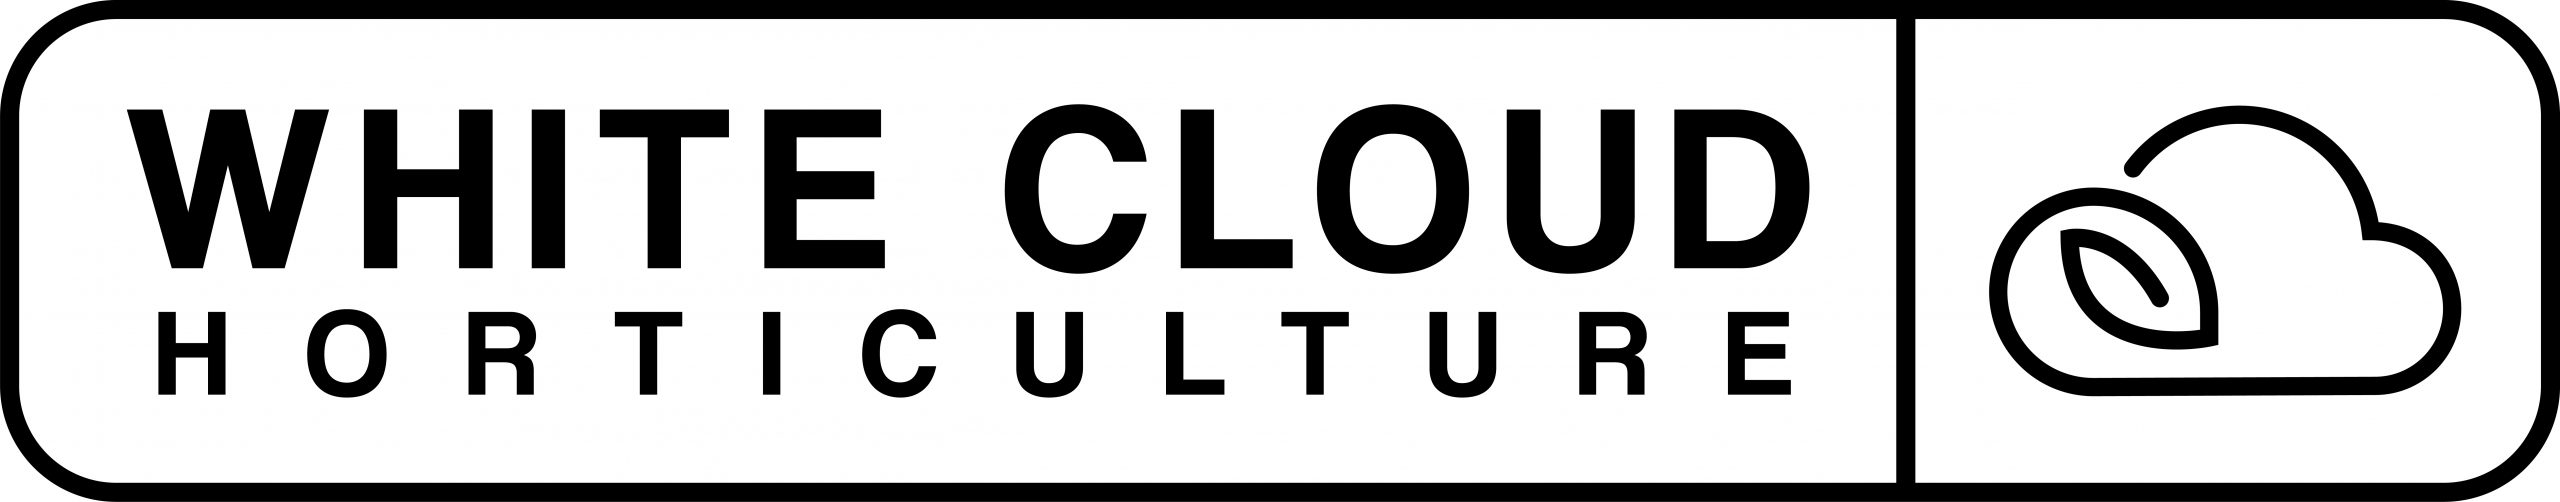 White Cloud Horticulture